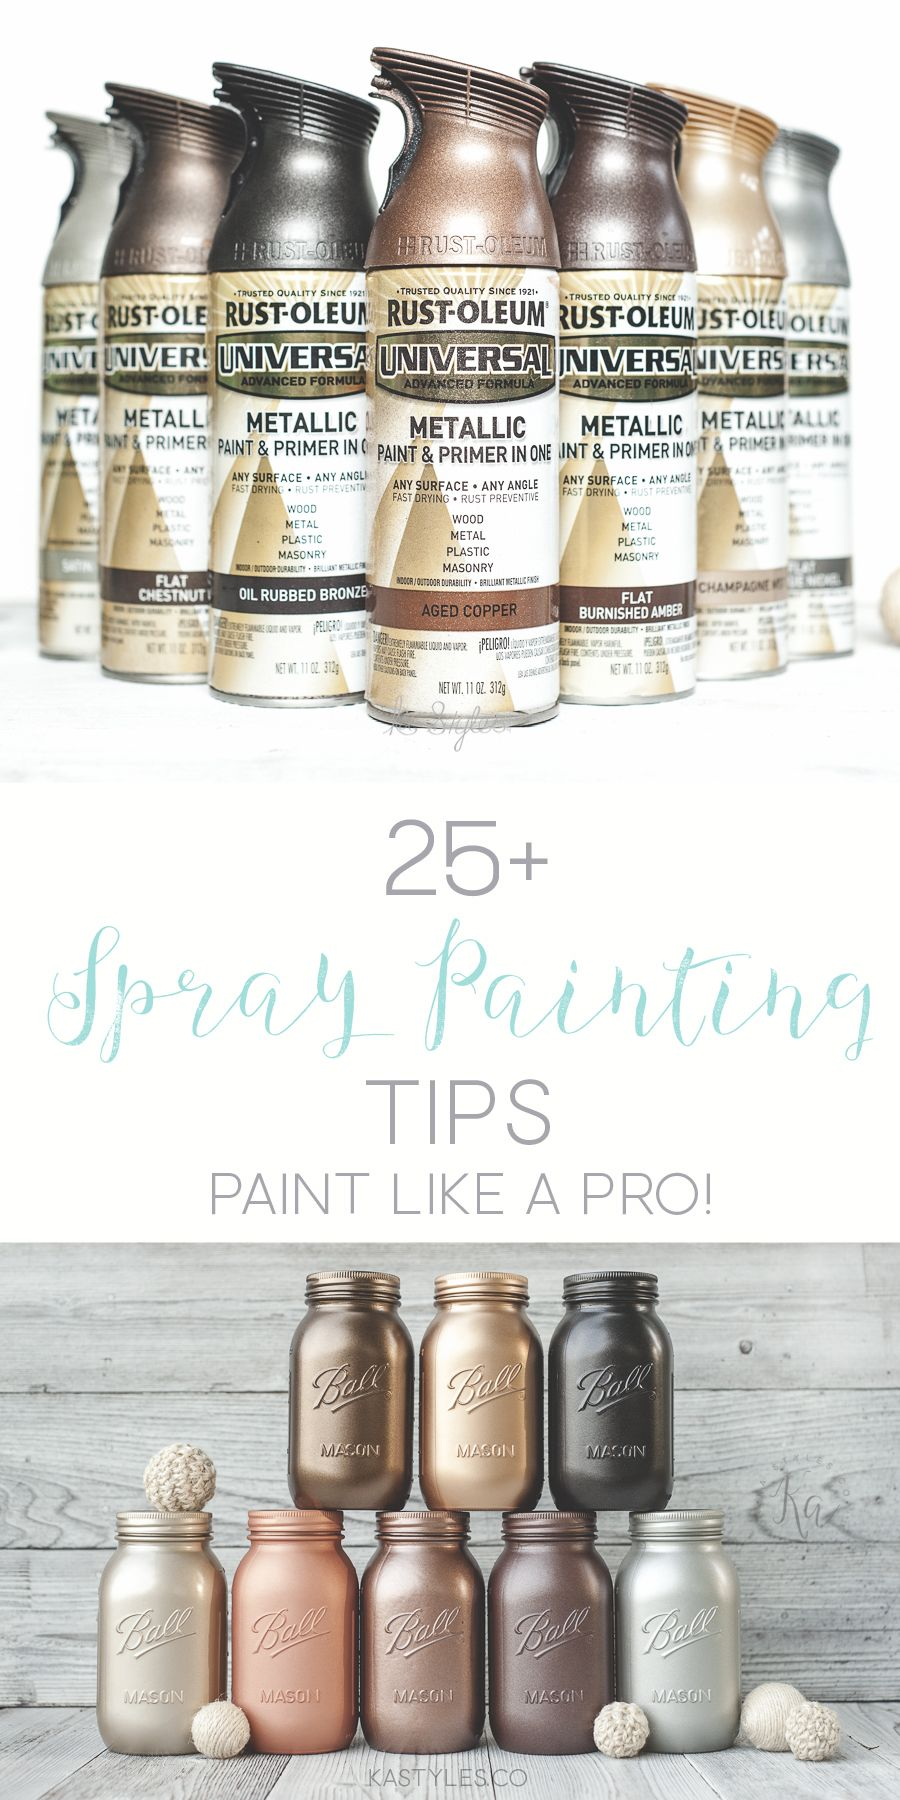 25 Spray Painting Tips - Sprinkled and Painted at KA Styles.co